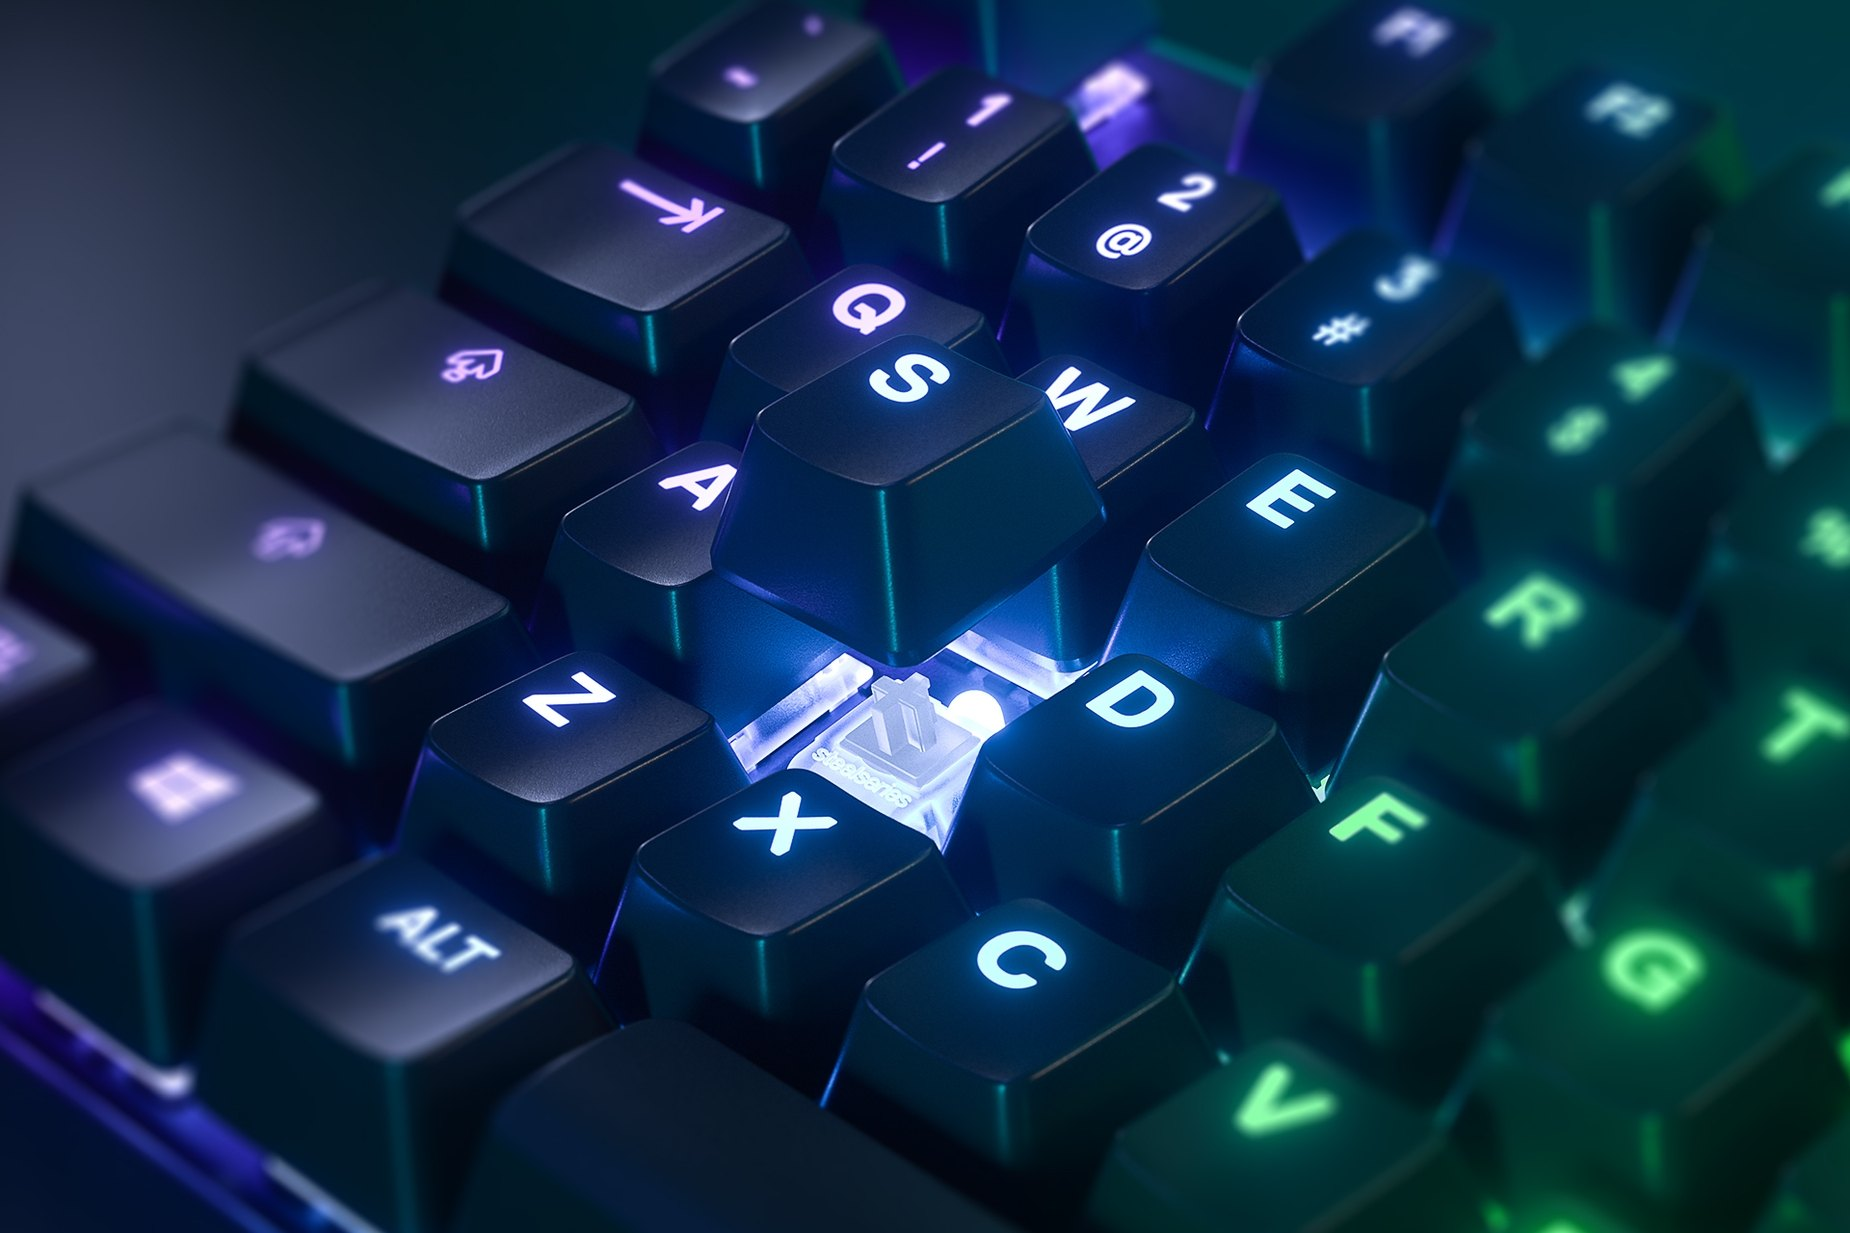 Zoomed in view of a single key on the UK English - Apex Pro TKL gaming keyboard, the key is raised up to show the SteelSeries OmniPoint Adjustable Mechanical Switch underneath